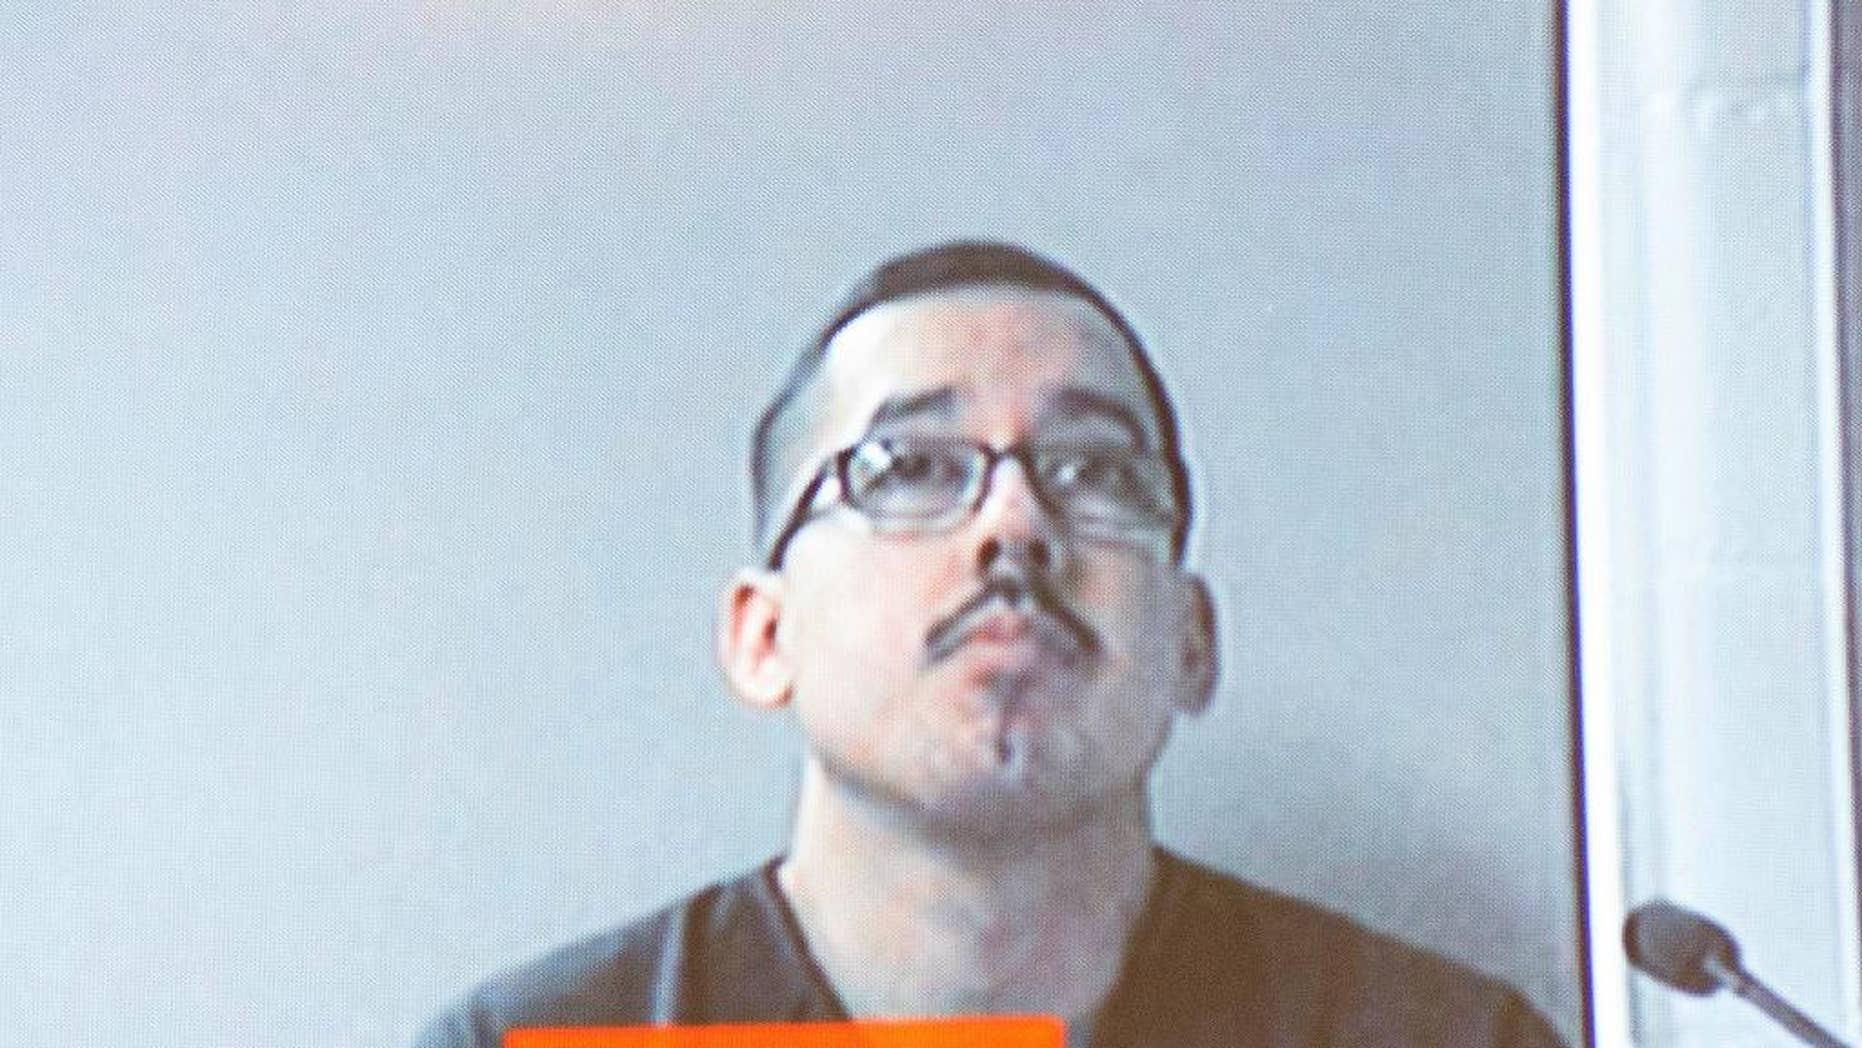 In this Dec. 7, 2016 photo, Ruben Hernandez, an FBI agent, appears via video screen from Kent County Jail as he's arraigned before Judge Michael Distel at the Kent County Courthouse in Grand Rapids, Mich. Hernandez was arrested in western Michigan for firing his gun at a police officer outside a fitness club on Tuesday, Dec. 6 and was arraigned Wednesday on charges including assault. (Kent County Courthouse/MLive.com-The Grand Rapids Press via AP)